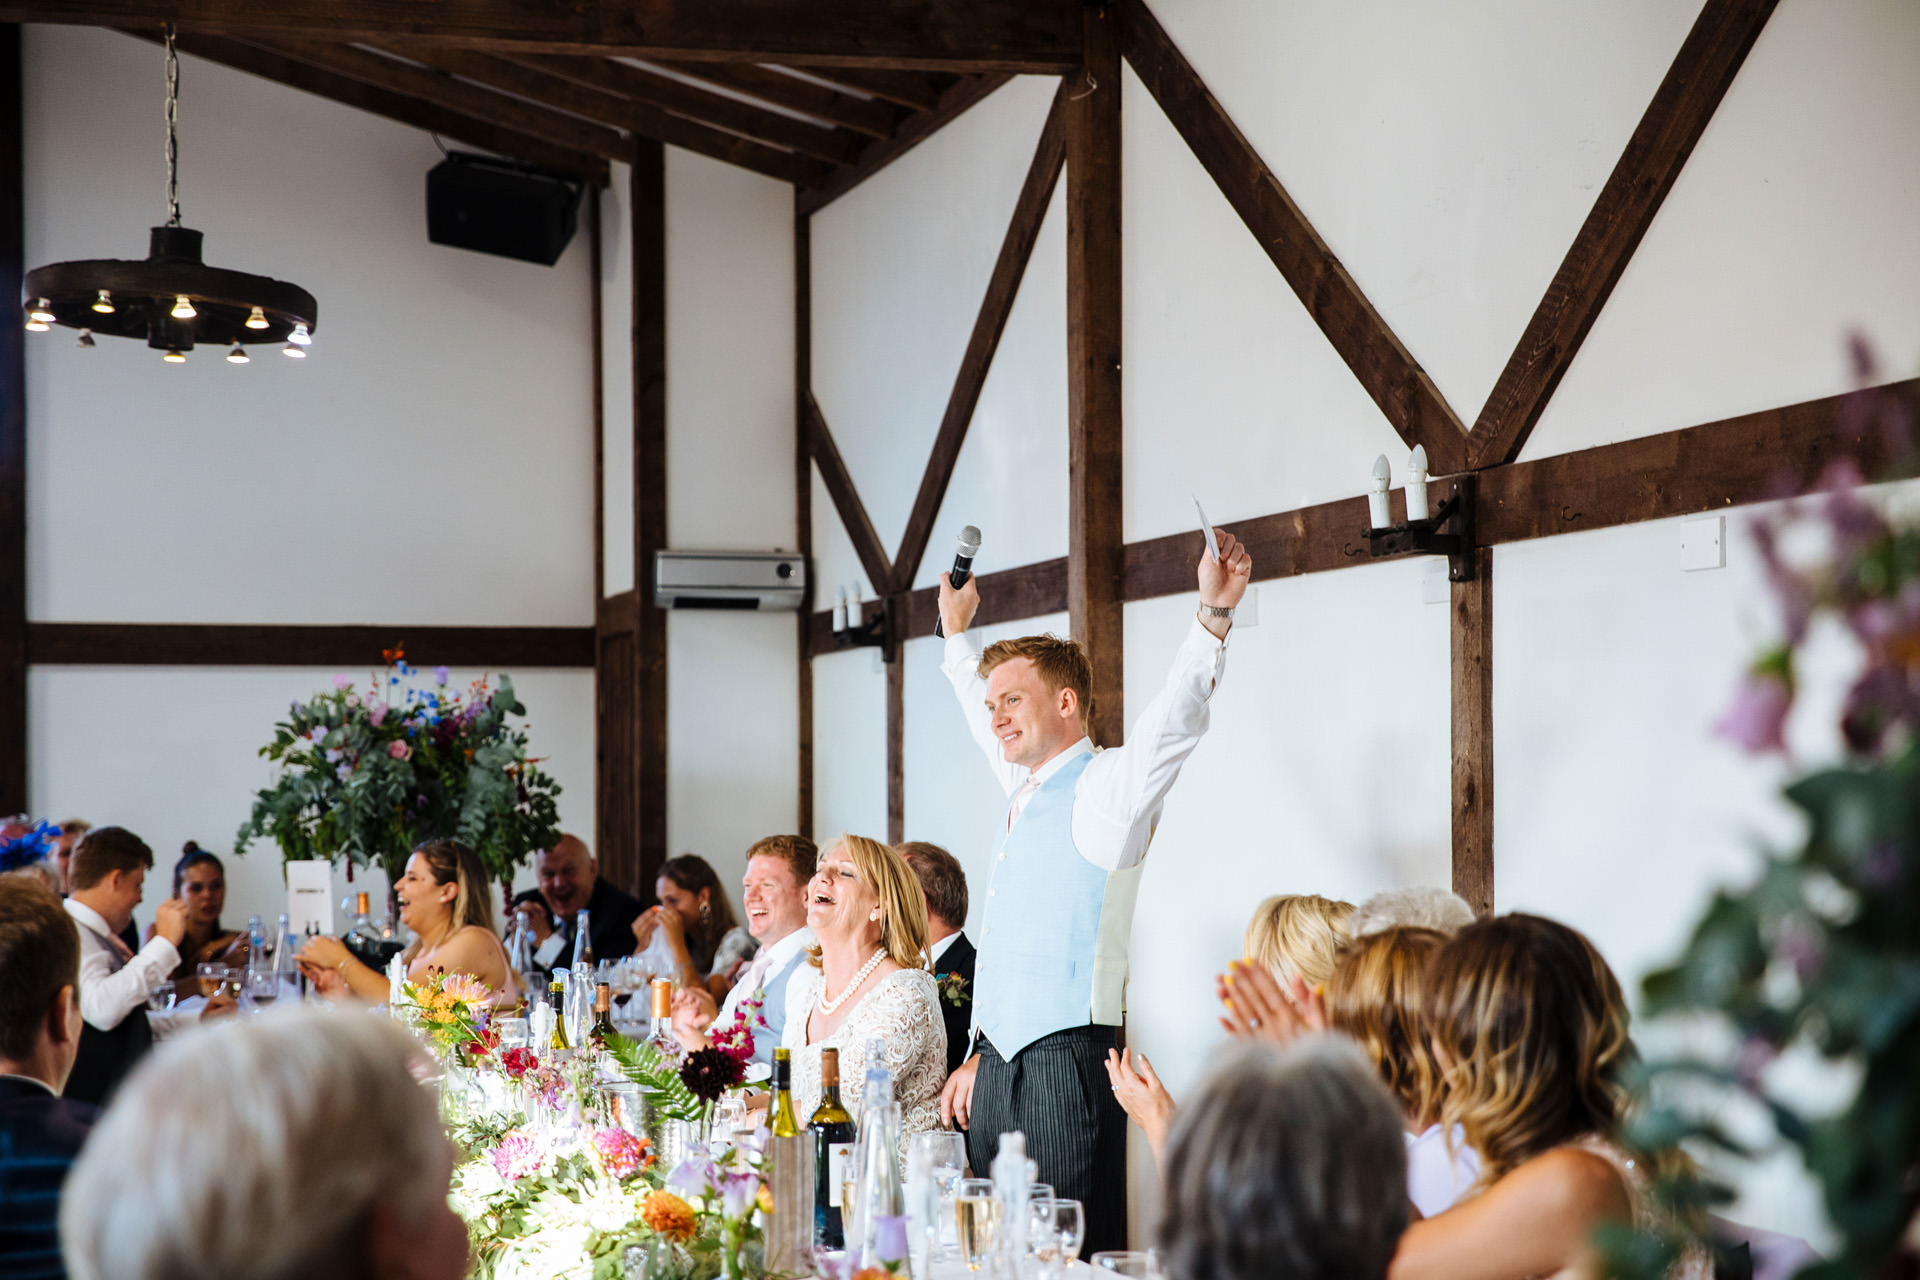 groom putting his hands up in the air cheering during wedding speech